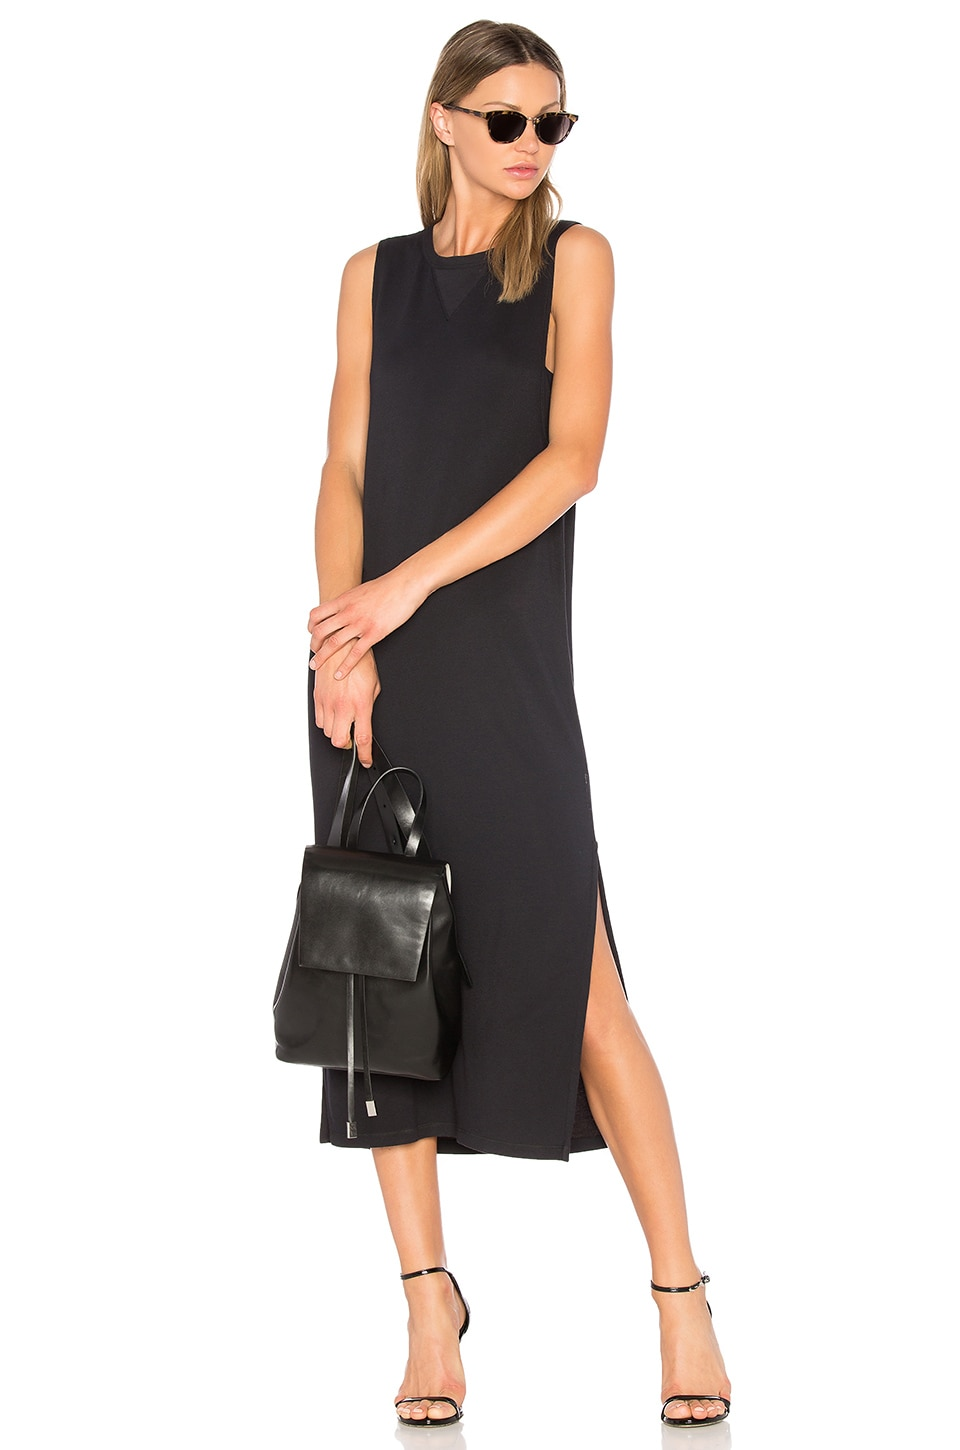 Rag & Bone Phoenix Dress in Black